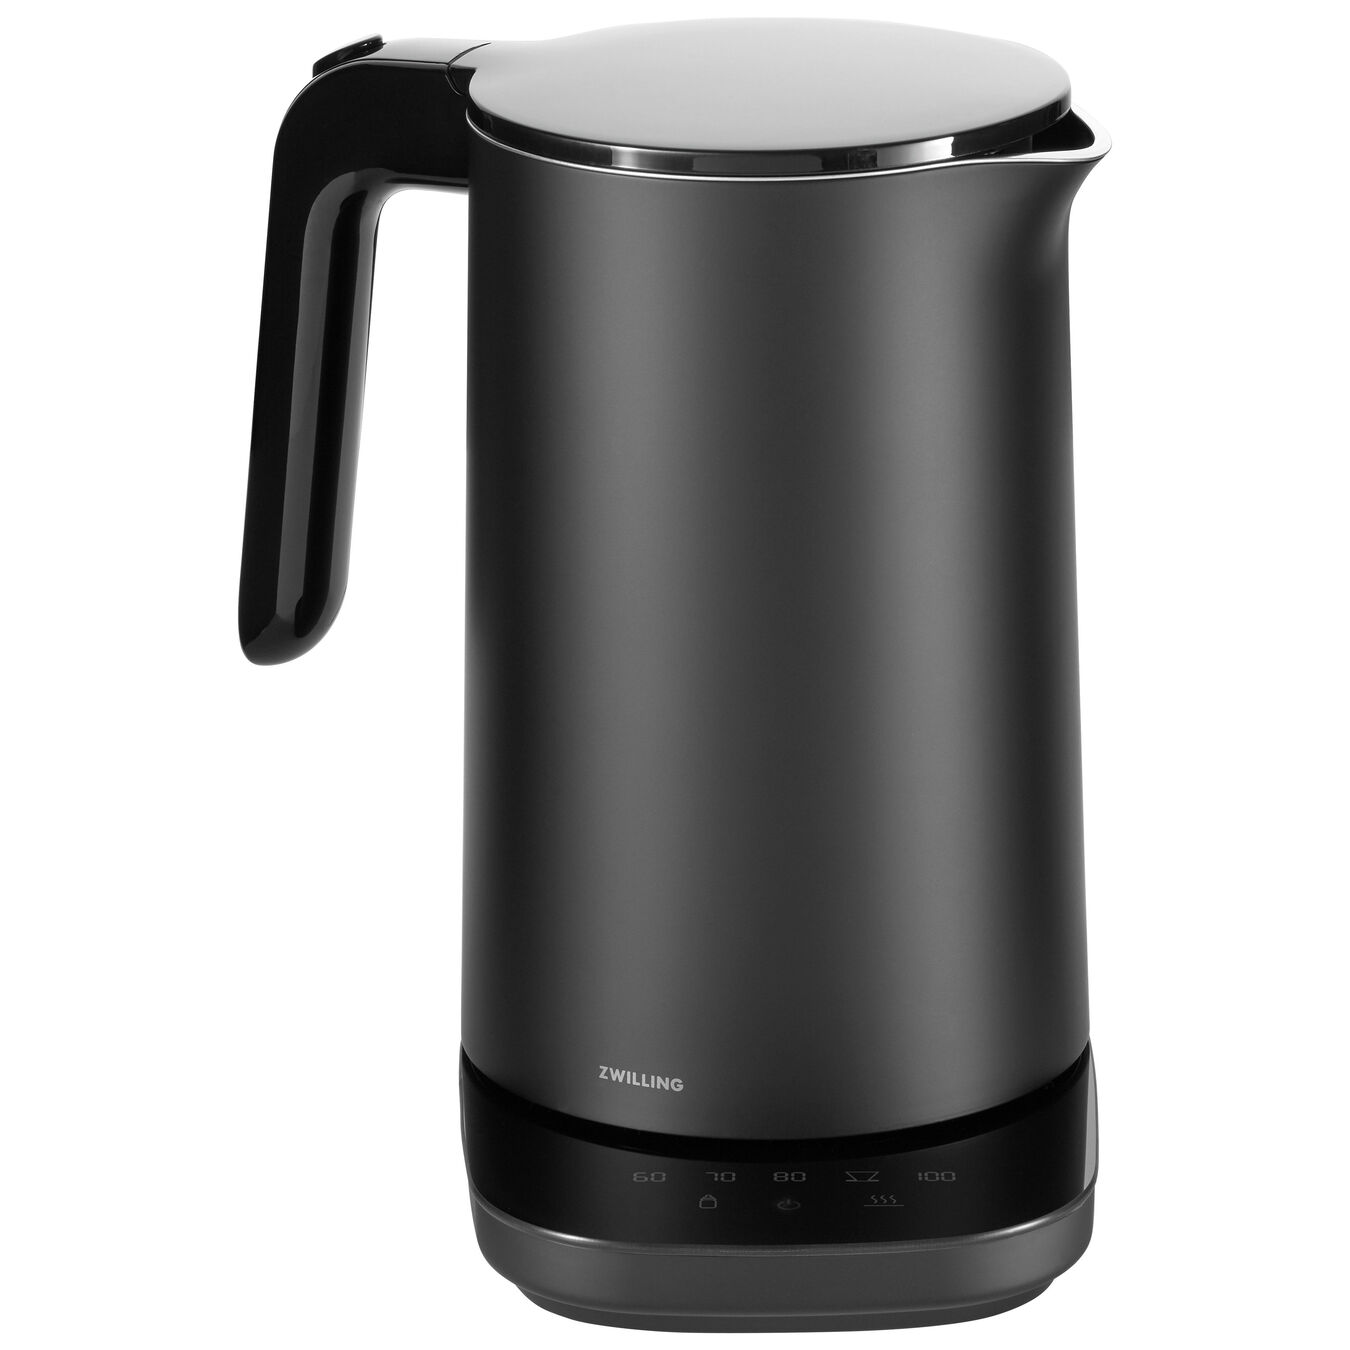 Cool Touch Kettle Pro - Black,,large 3